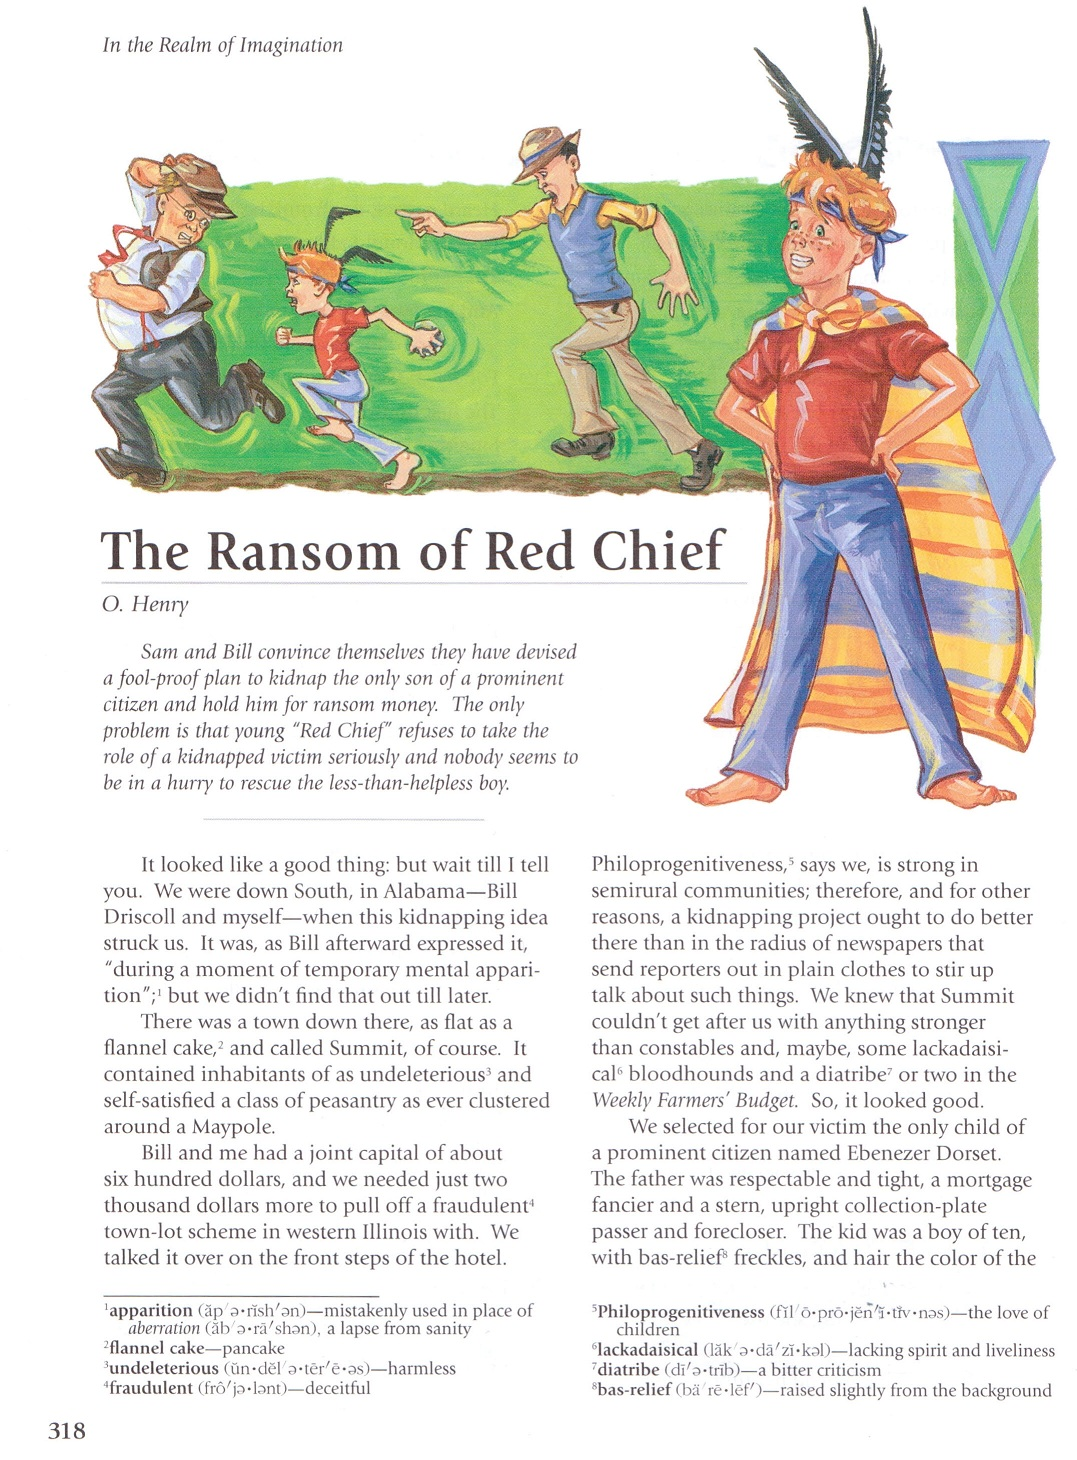 summary about the ransom of red chief essay The ransom of red chief the ransom of red chief essay sample categories free essays tags write a five paragraph essay explicating the three sorts of sarcasm and giving at least one illustration of each sort of sarcasm from the narrative.